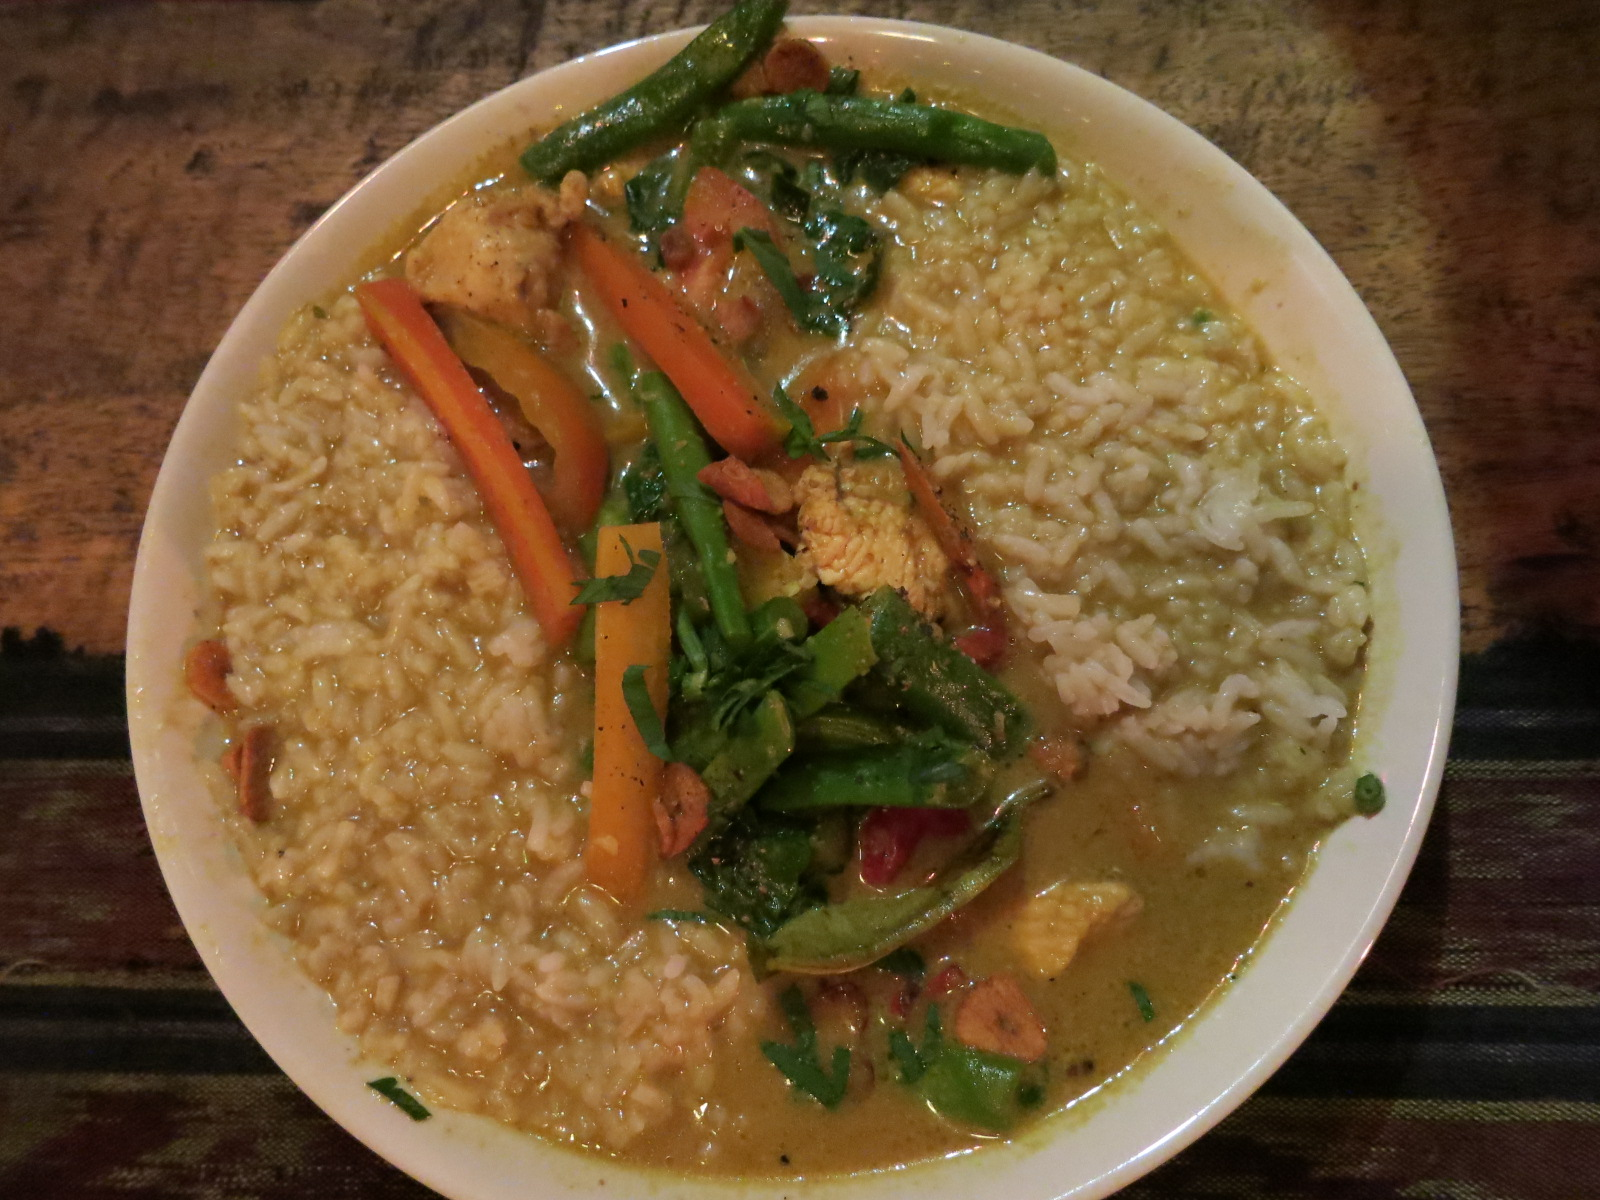 Eric's favorite: chicken curry from Bintang Bali Warung